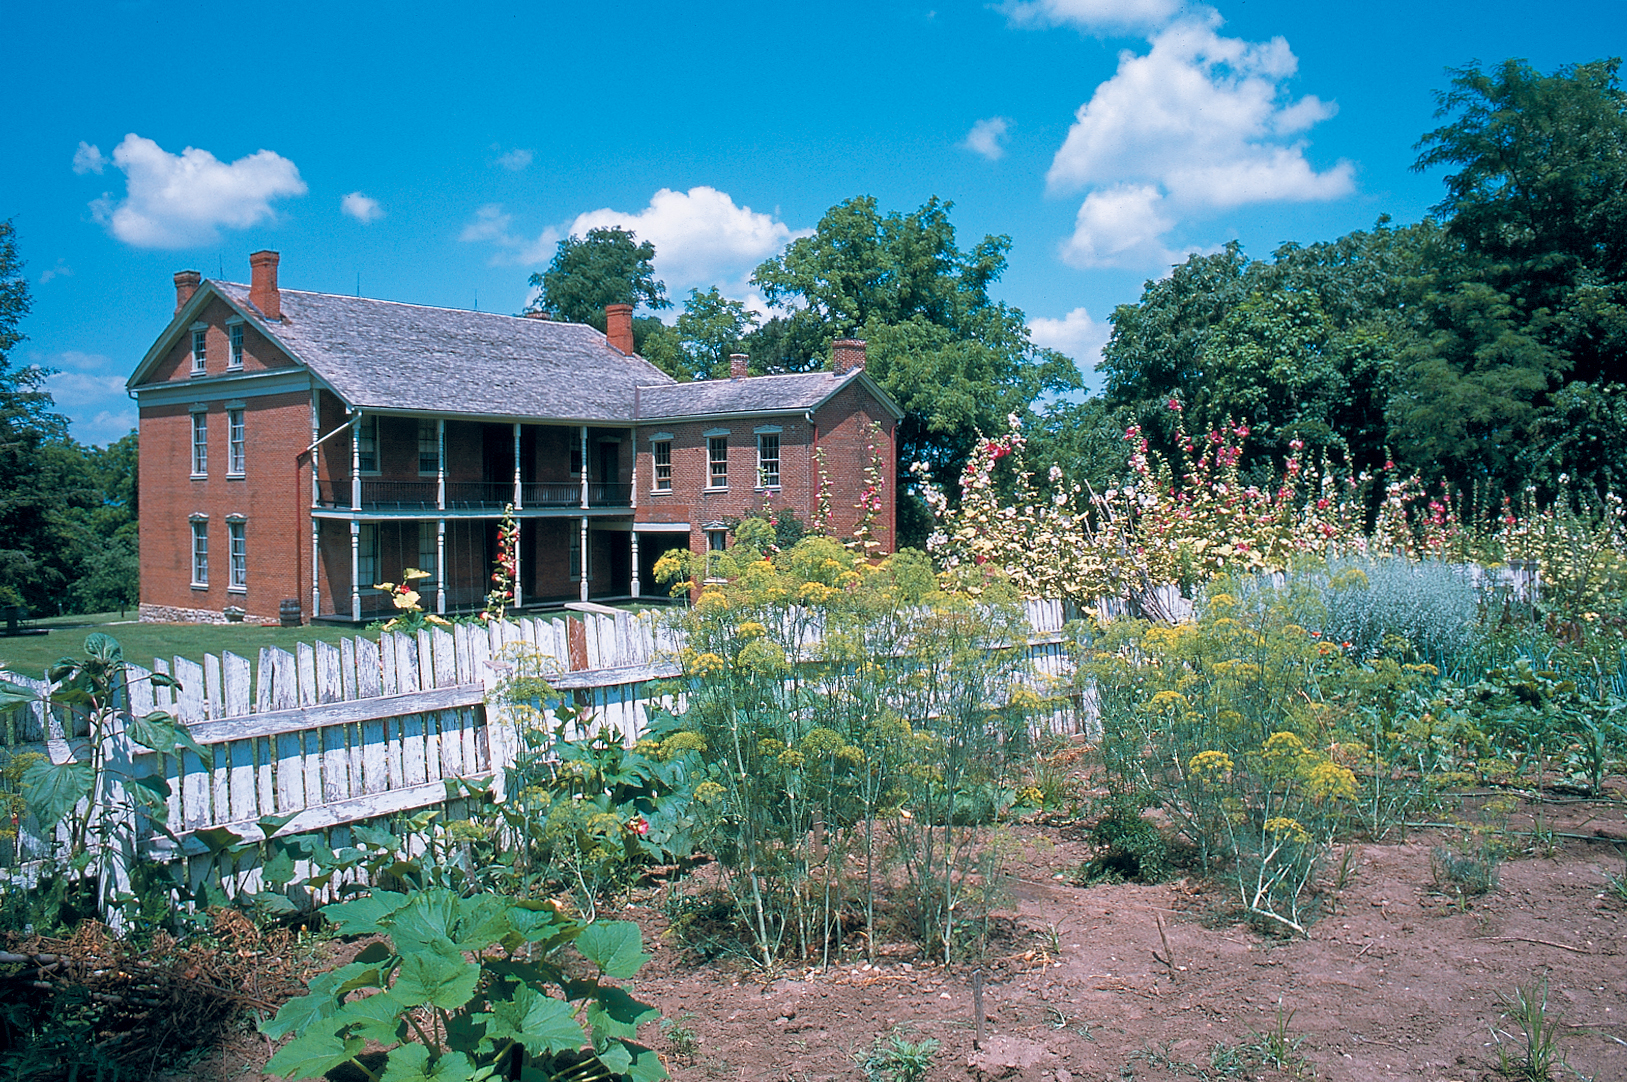 Exterior of the Anderson House with the garden in the foreground